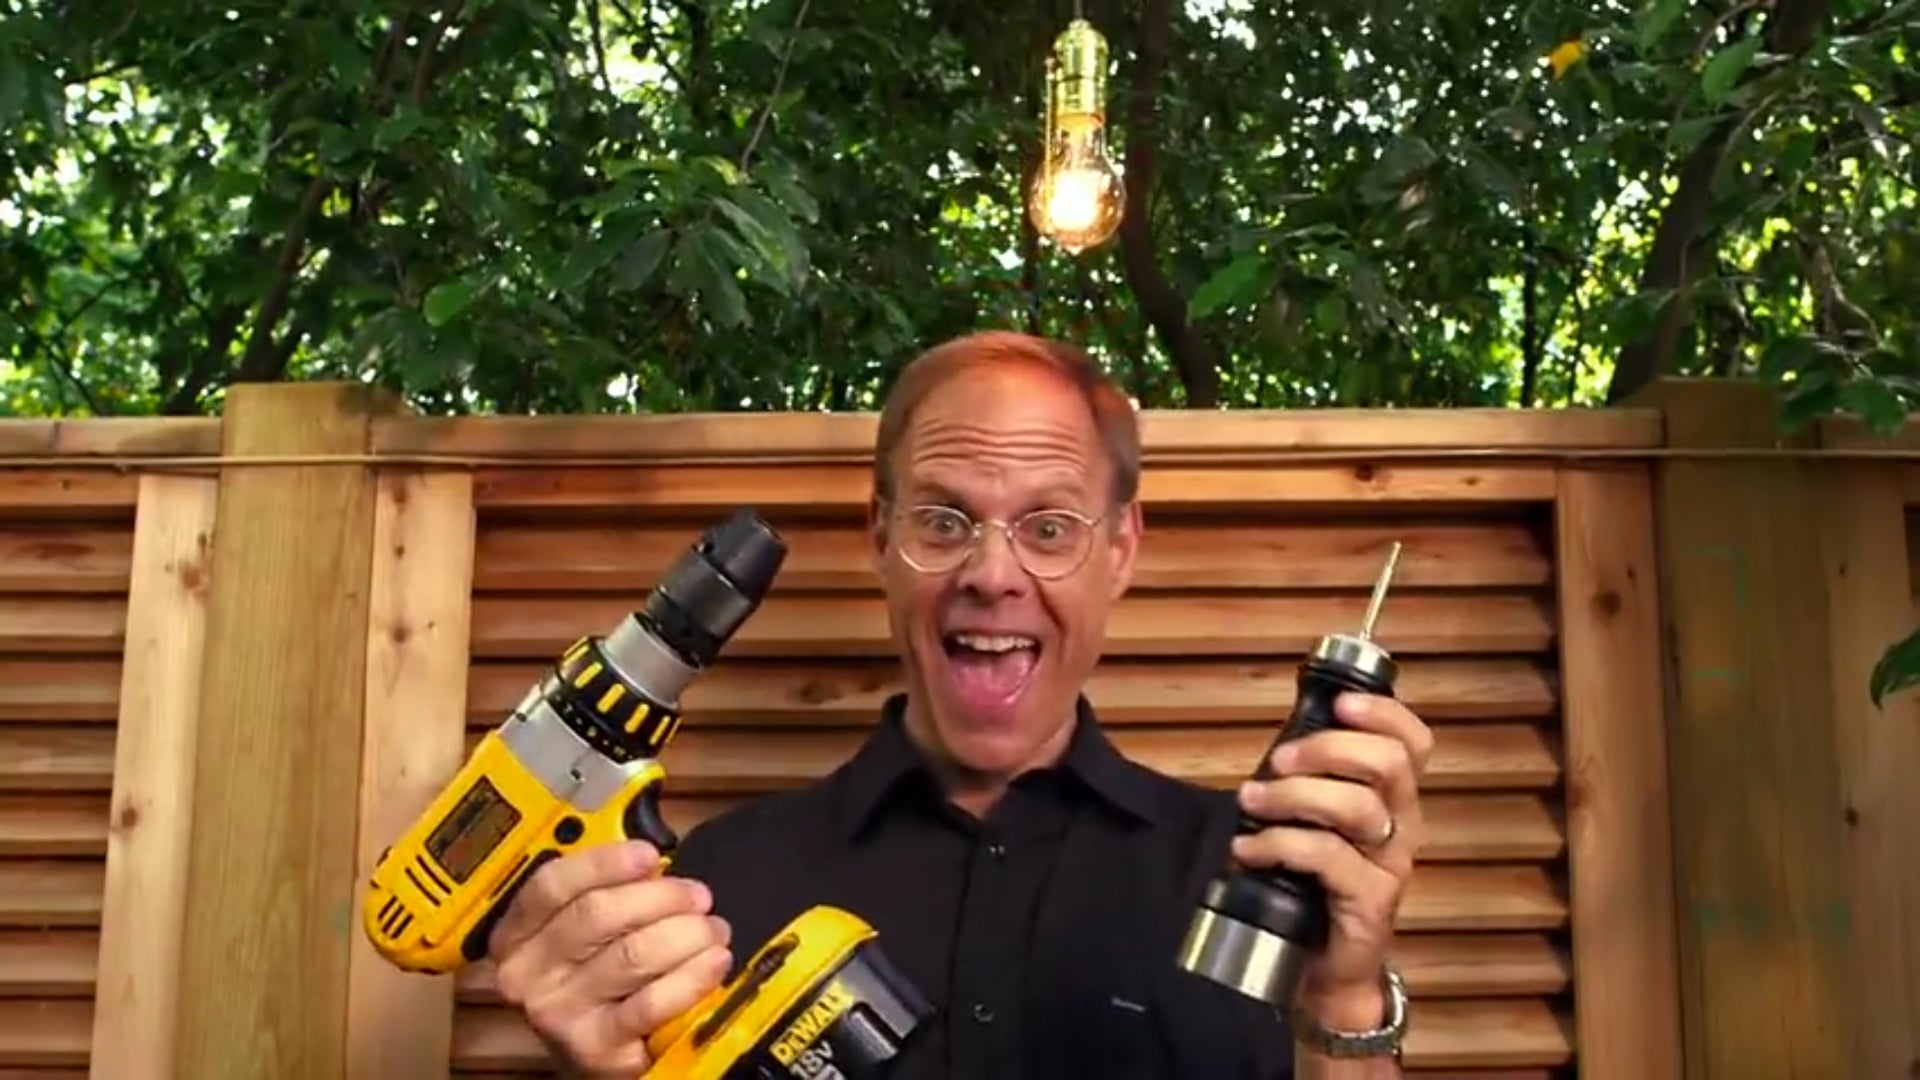 Alton Brown Seasons Steak With A Power Drill